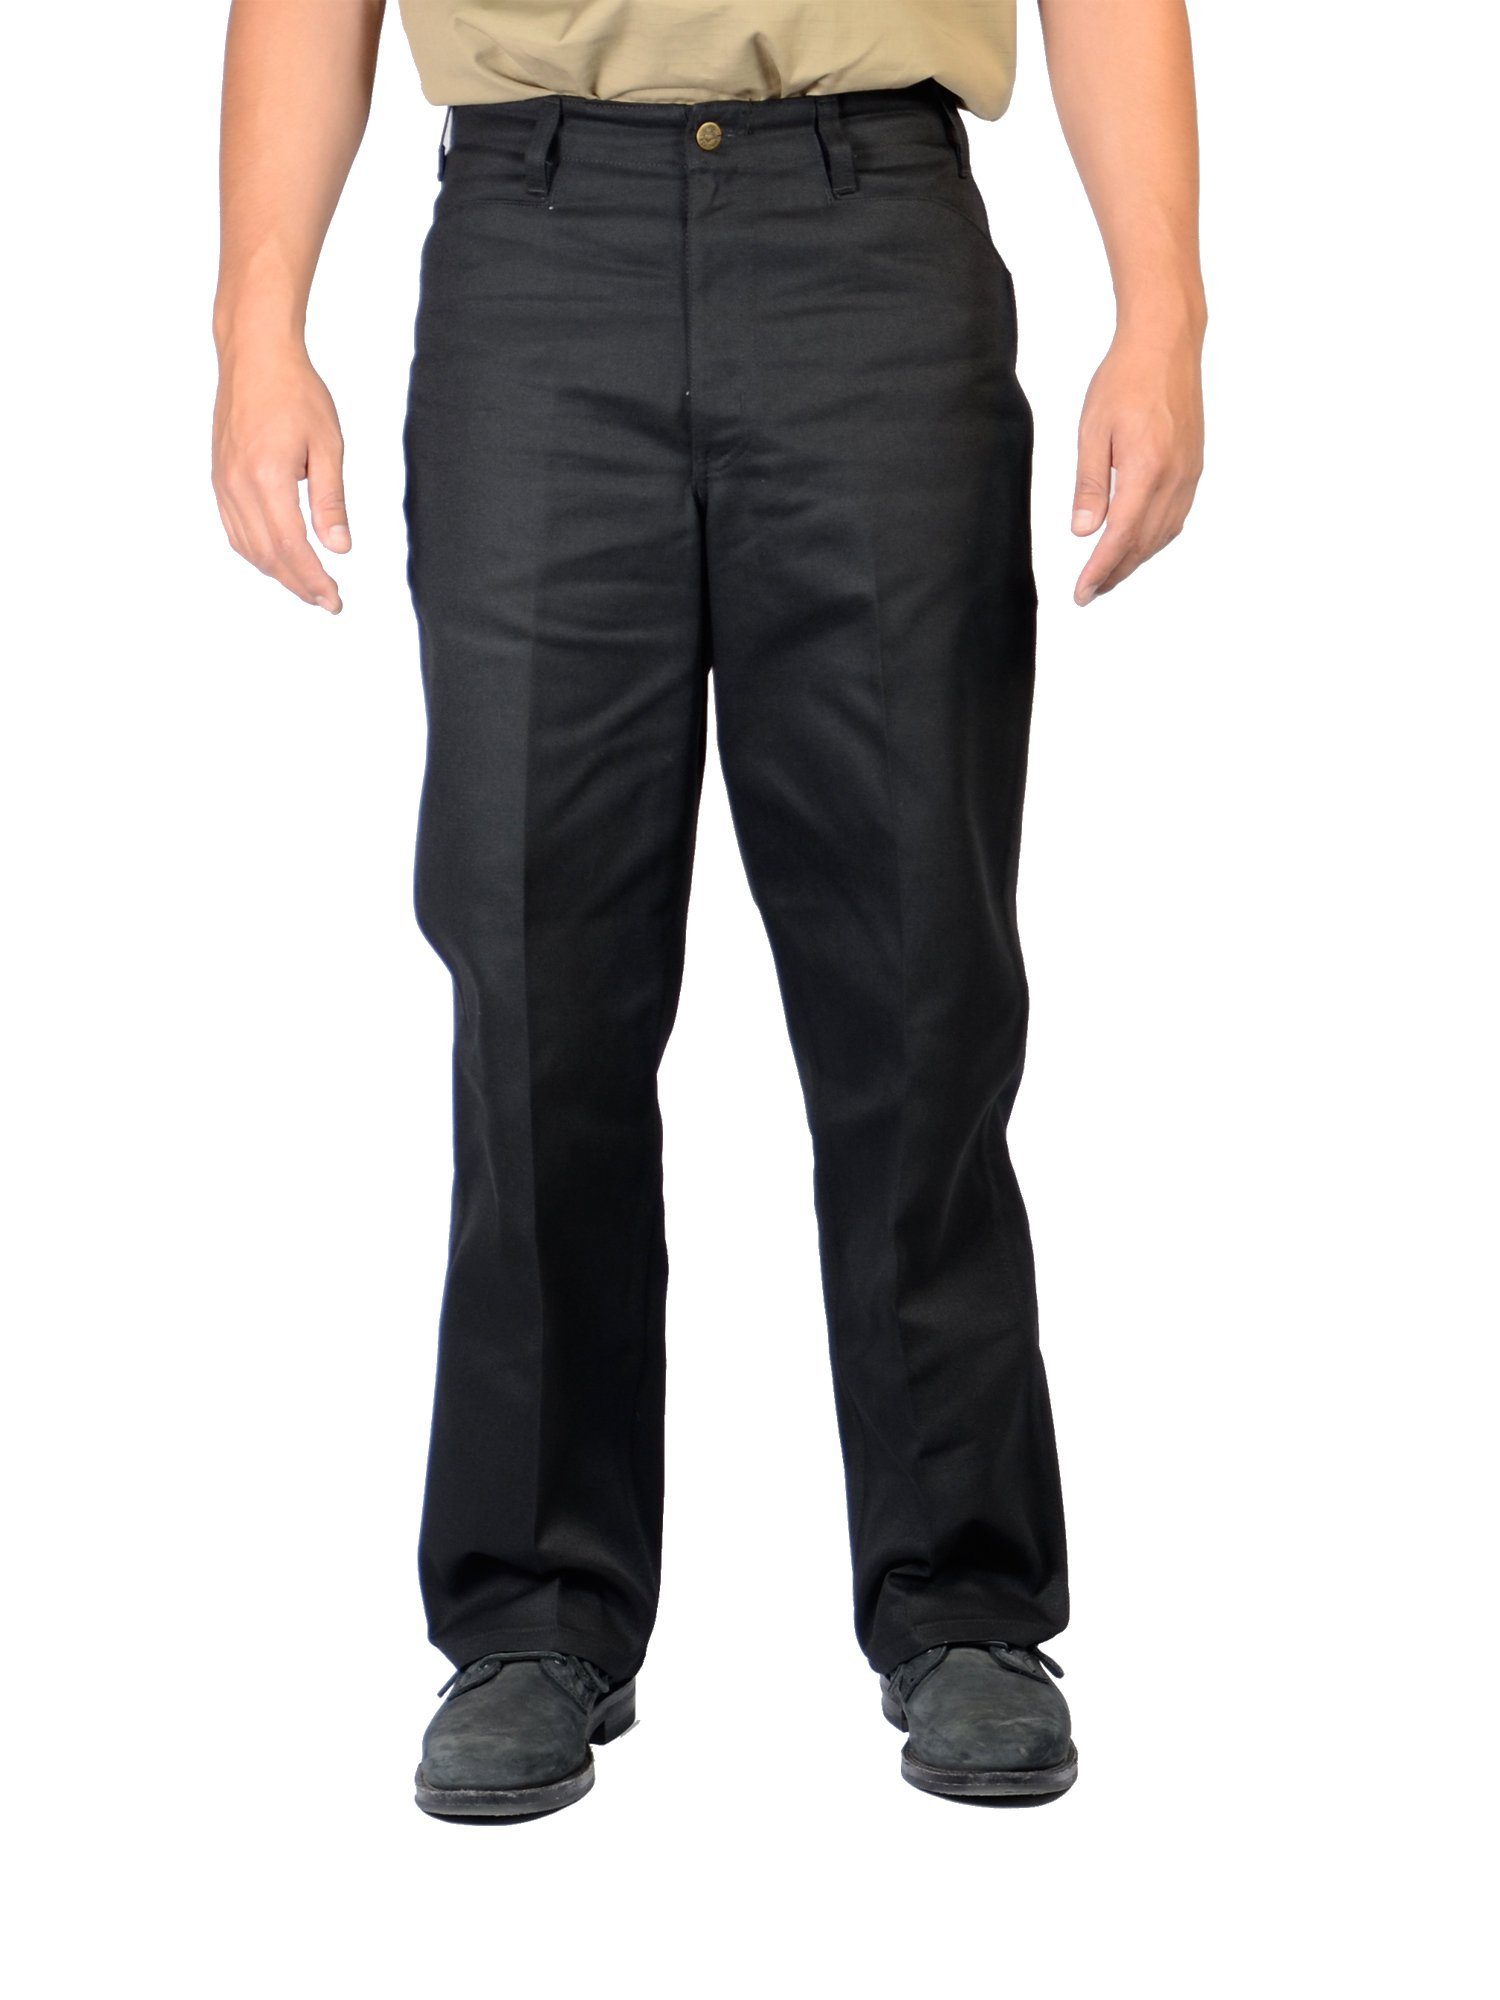 Ben Davis Black Original Ben's Cotton Twill Pants 36X32